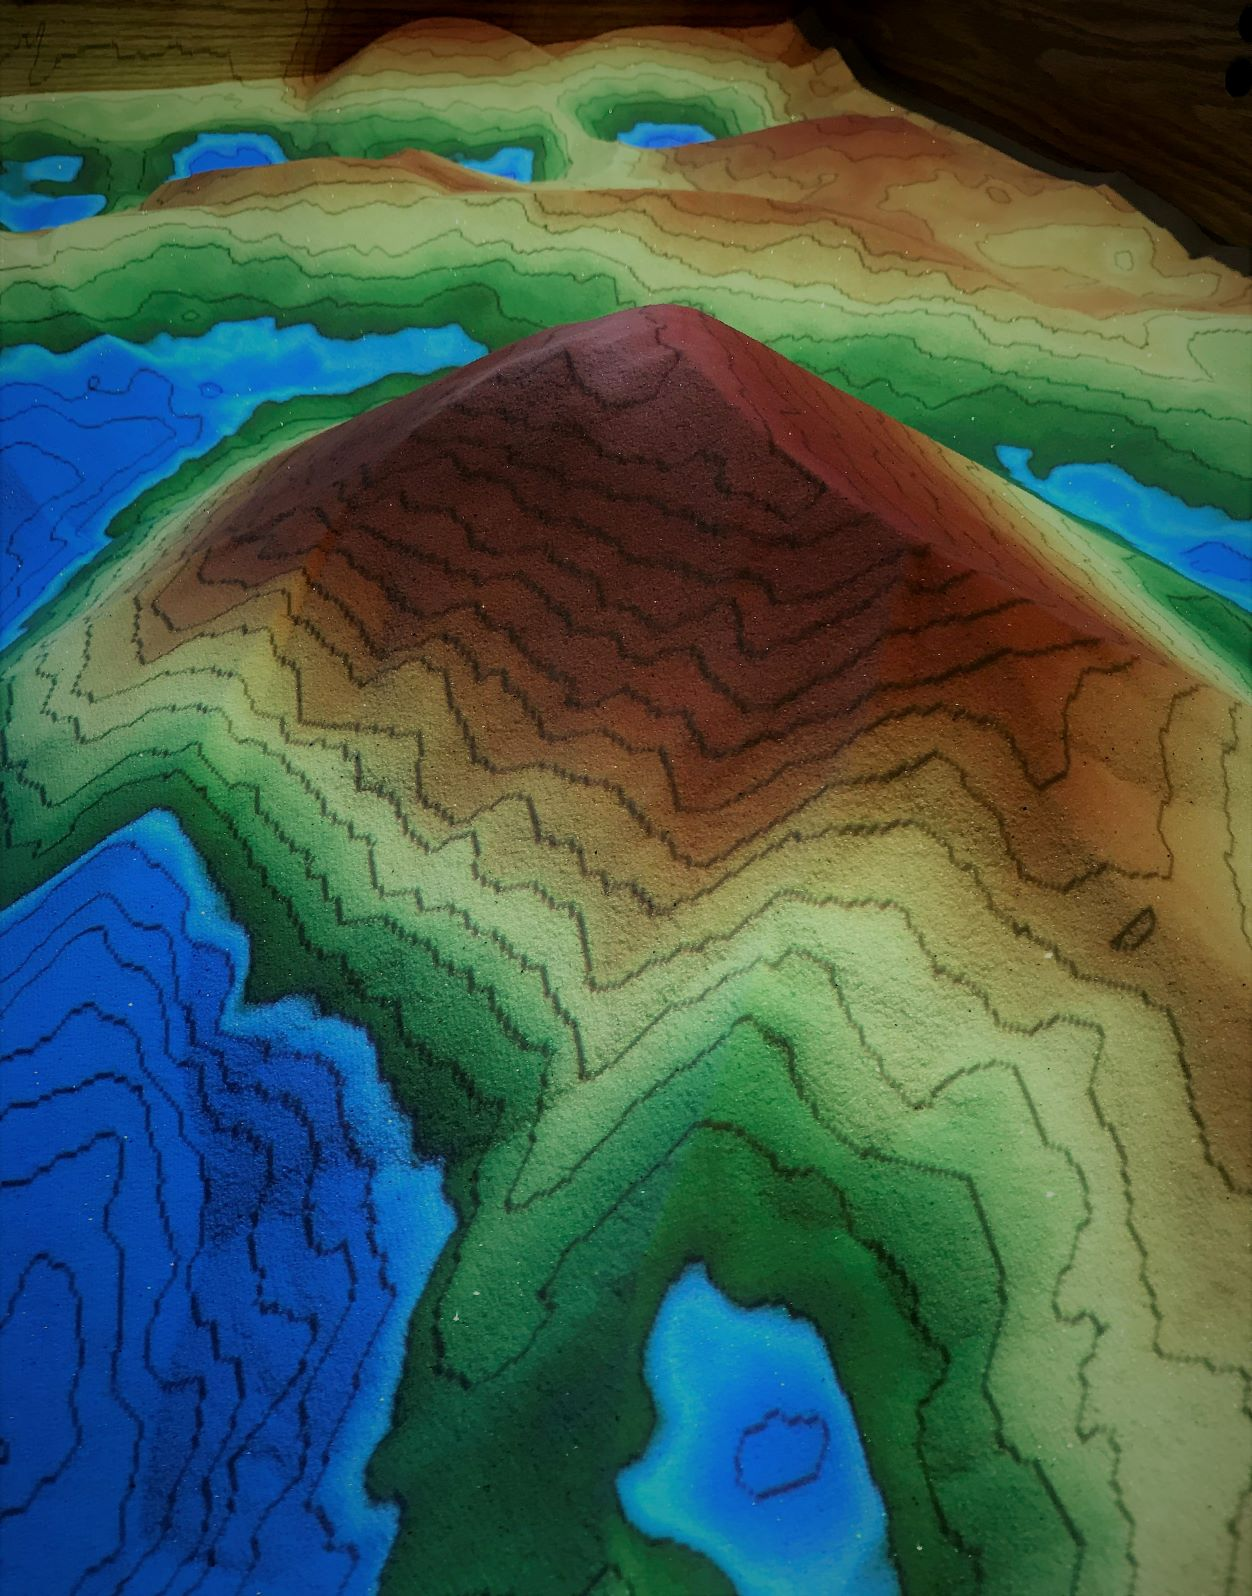 Create your own landscape - Dig, pile, and tunnel your own topographic landscape. Make it rain and create seas, ponds and lakes.